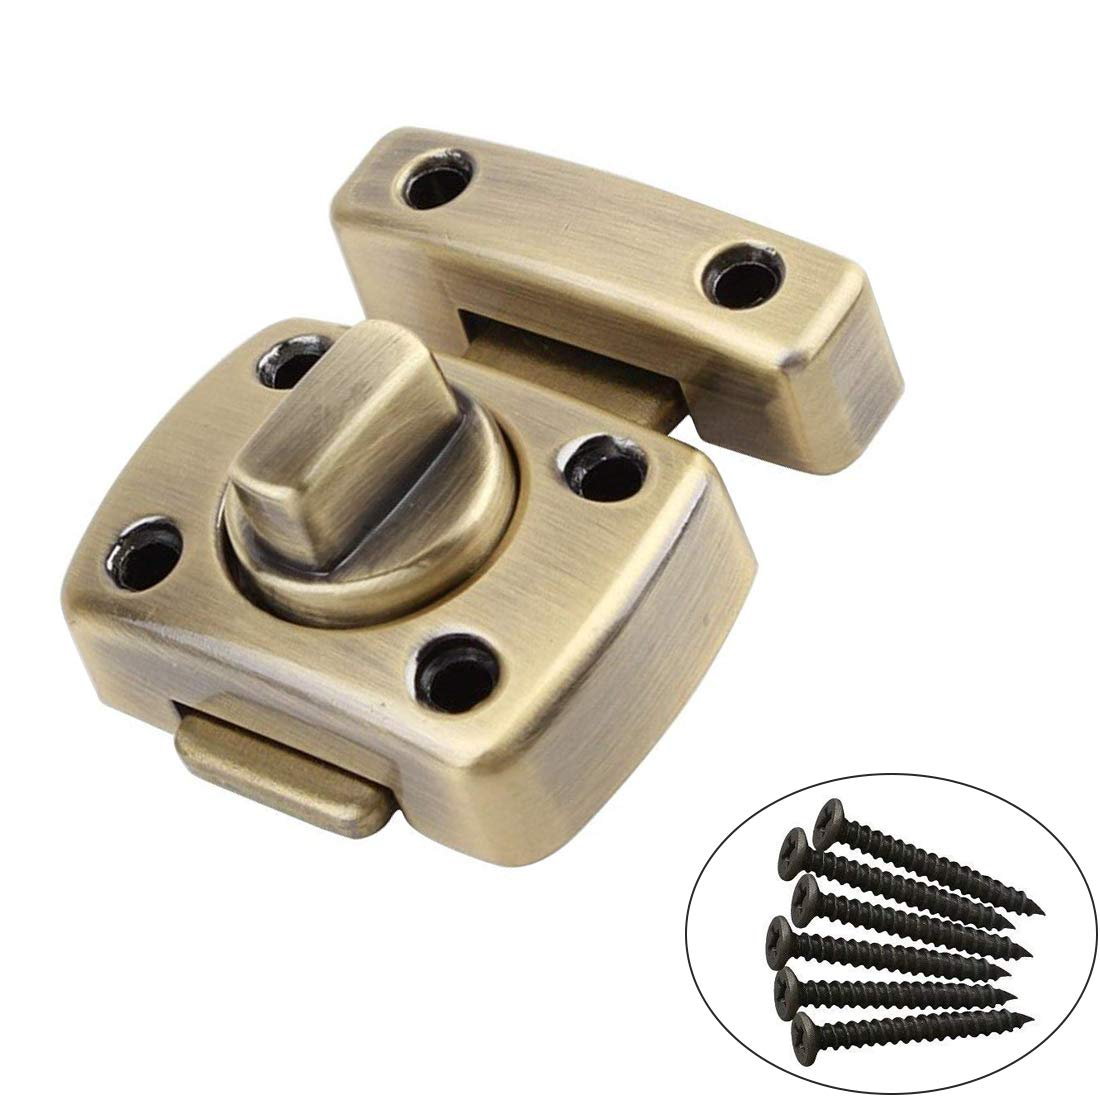 ZXHAO Zinc Alloy Small Size Solid Rotate Bolt Latch Gate Latches/Lock For Pet Gate Cabinet Furniture (Green Bronze)